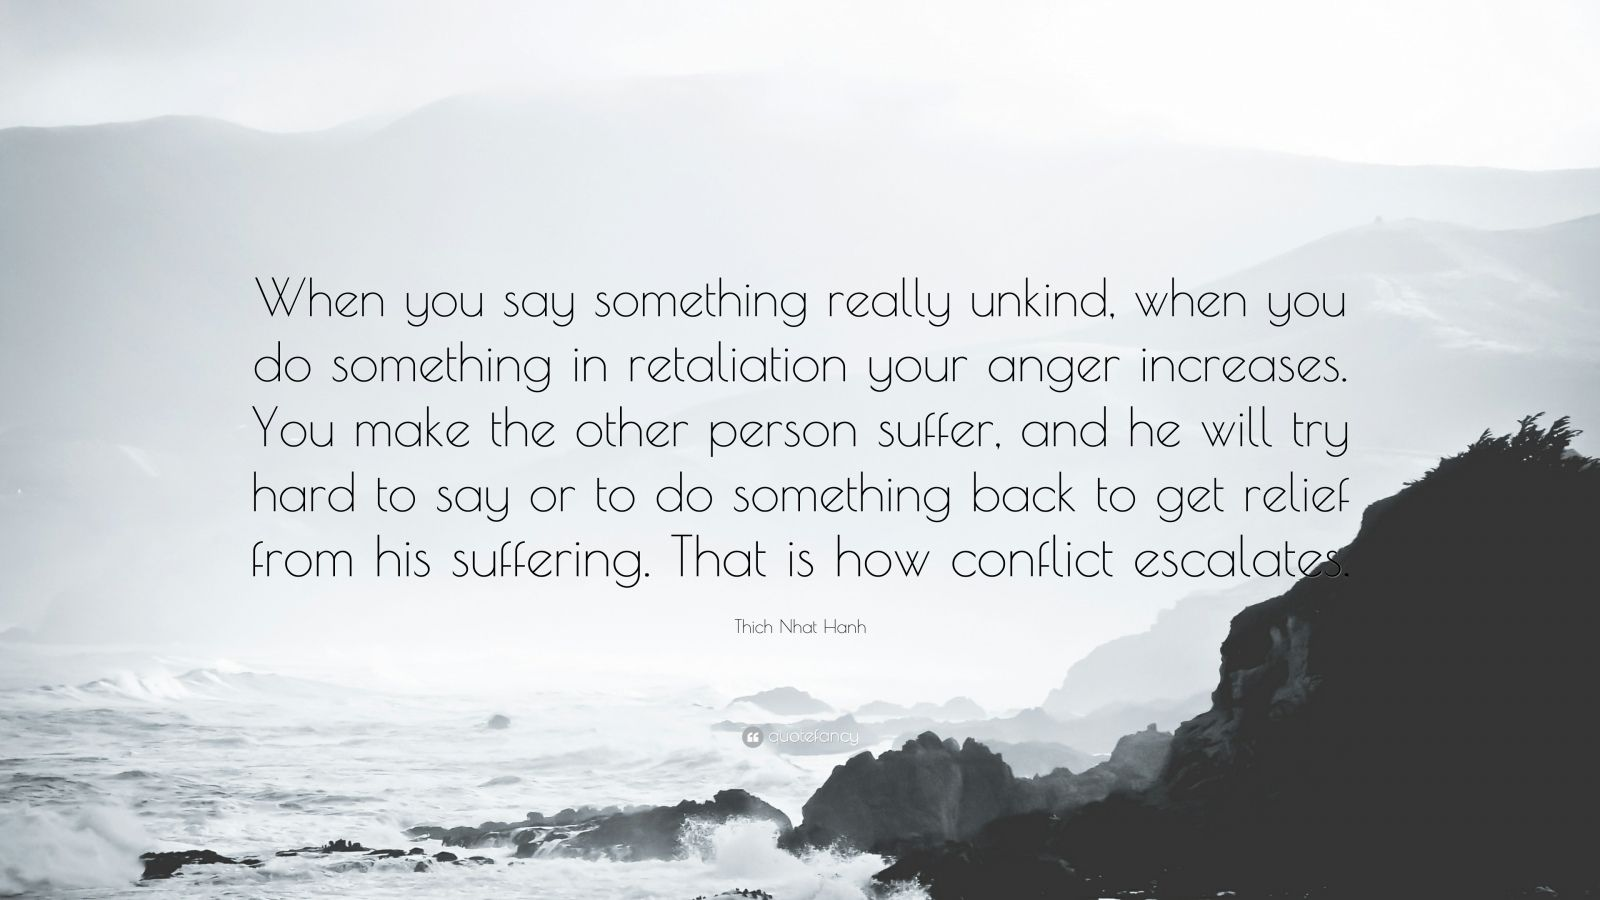 "Thich Nhat Hanh Quote: ""When you say something really unkind, when you do something in retaliation your anger increases. You make the other person suffer, and he will try hard to say or to do something back to get relief from his suffering. That is how conflict escalates."""